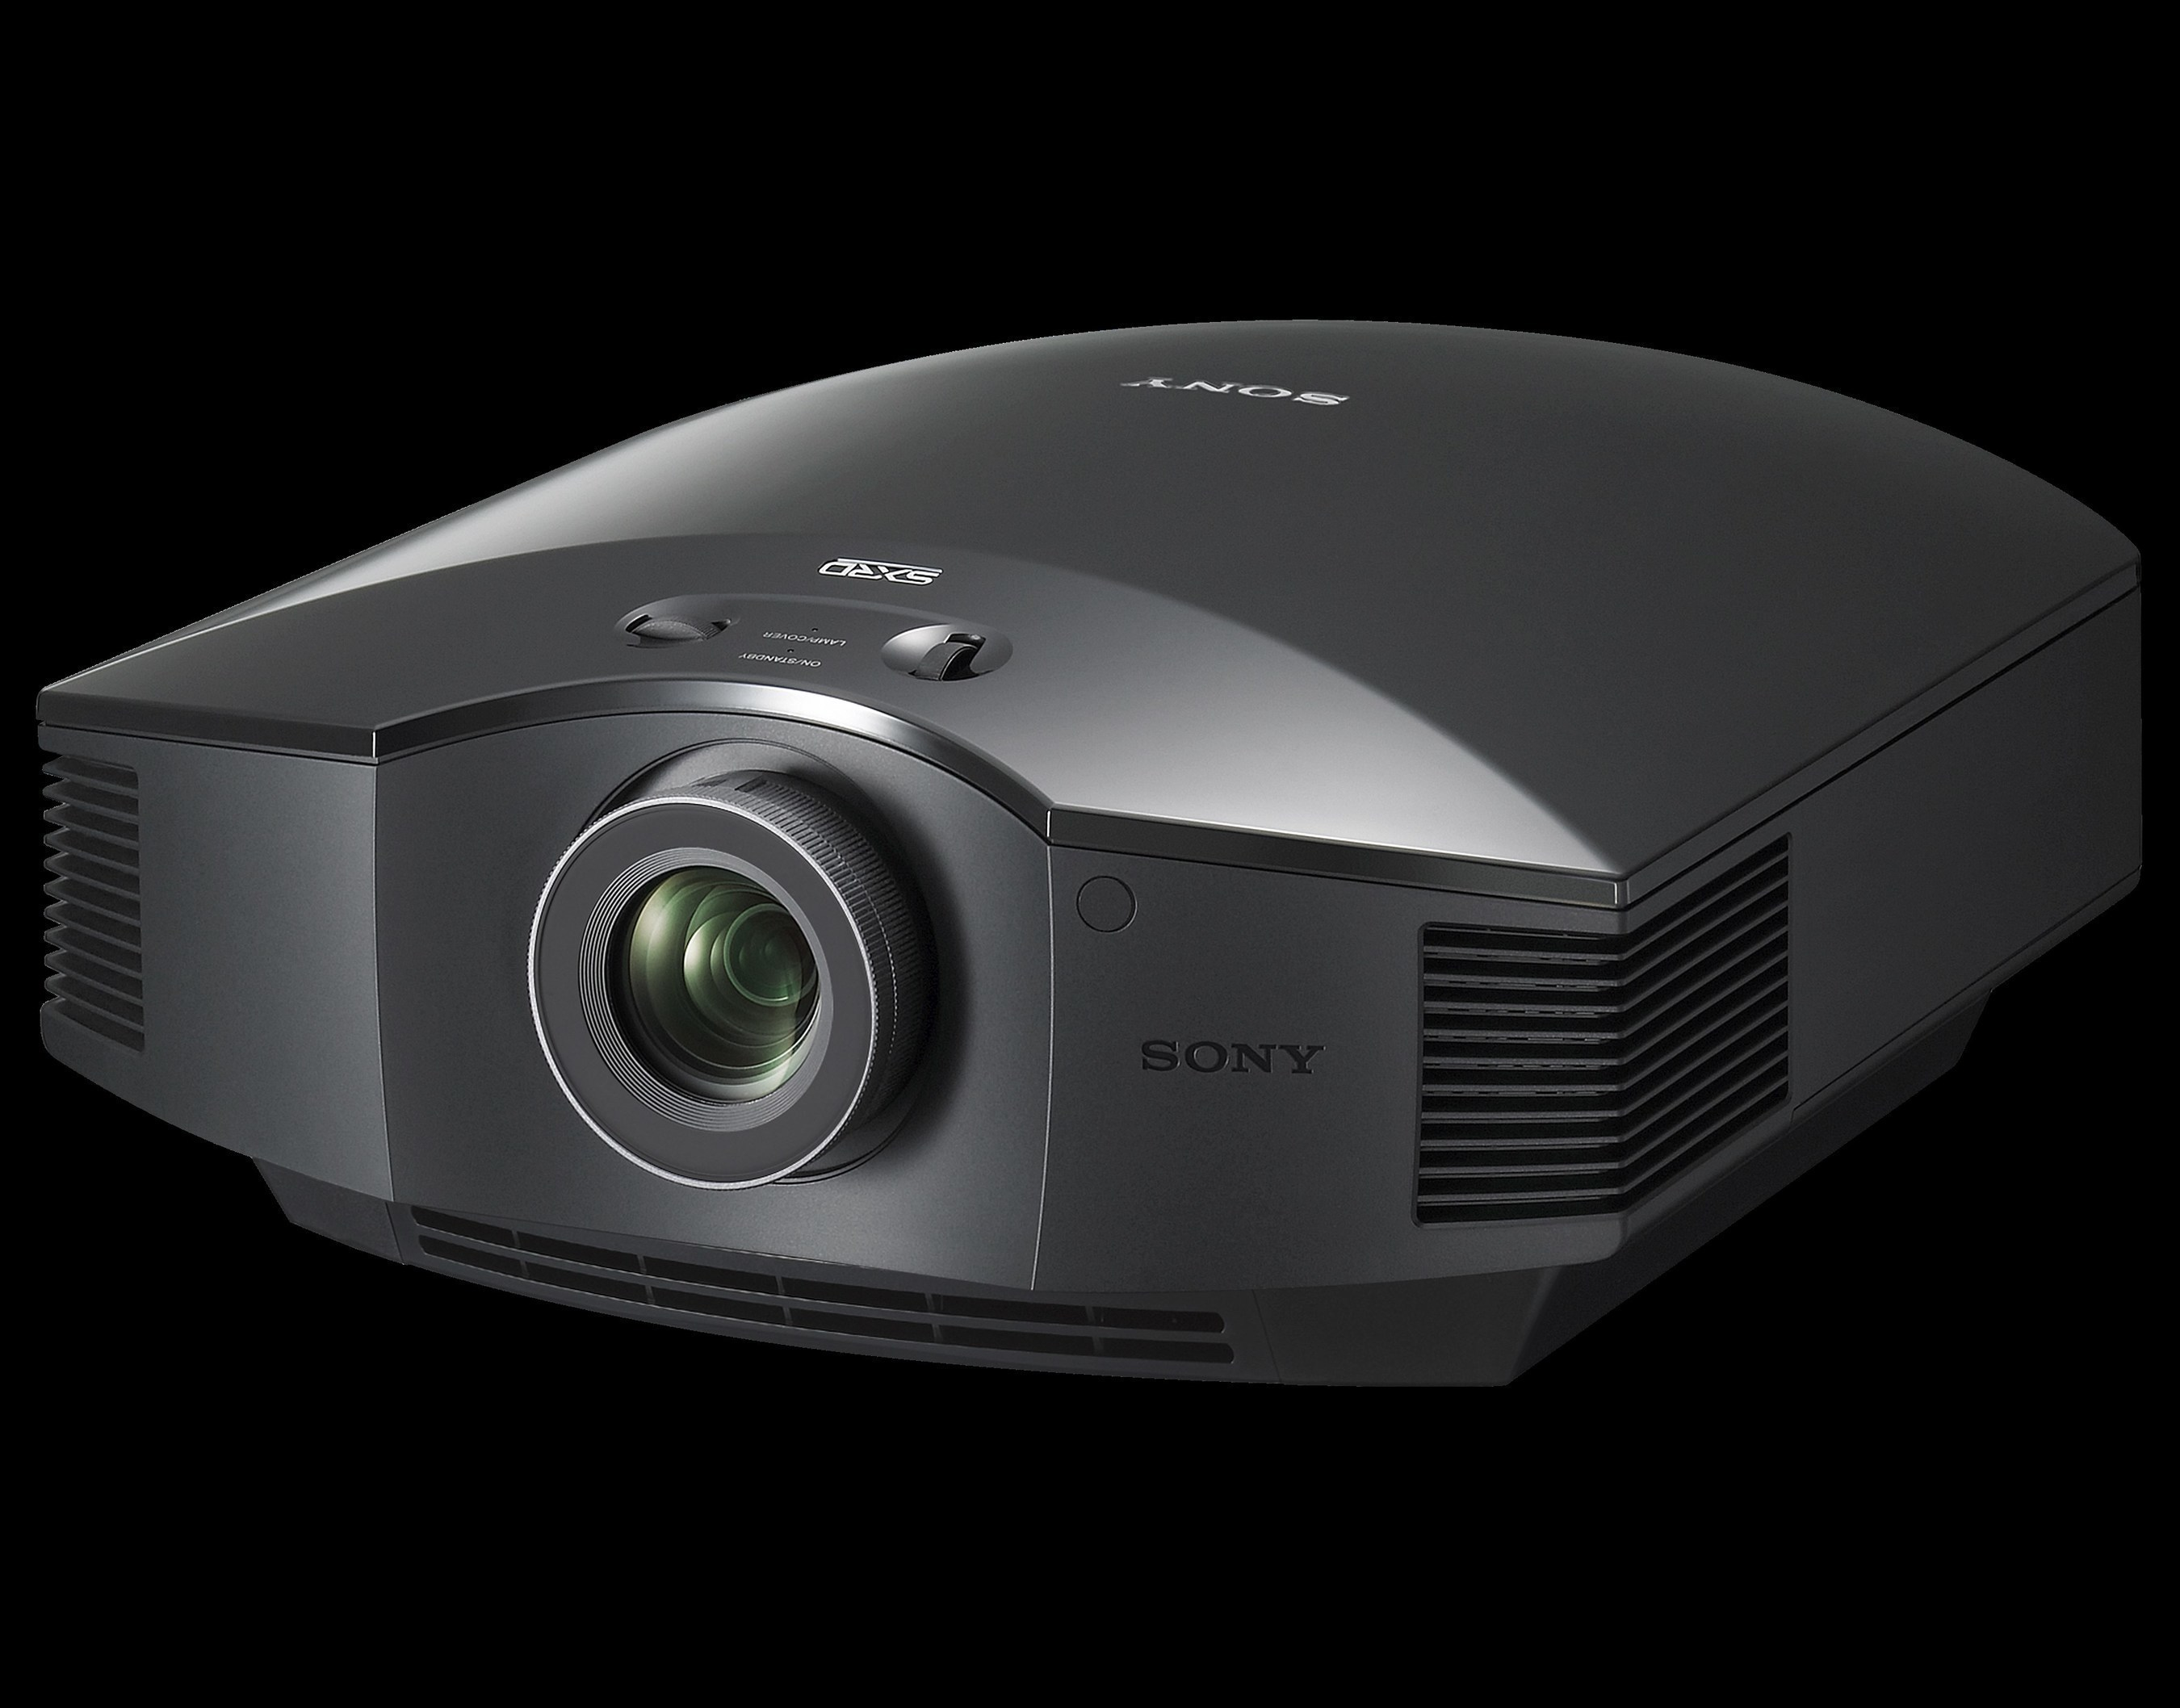 Sony Electronics Announces 4K Home Theater Projectors at CEDIA 2015